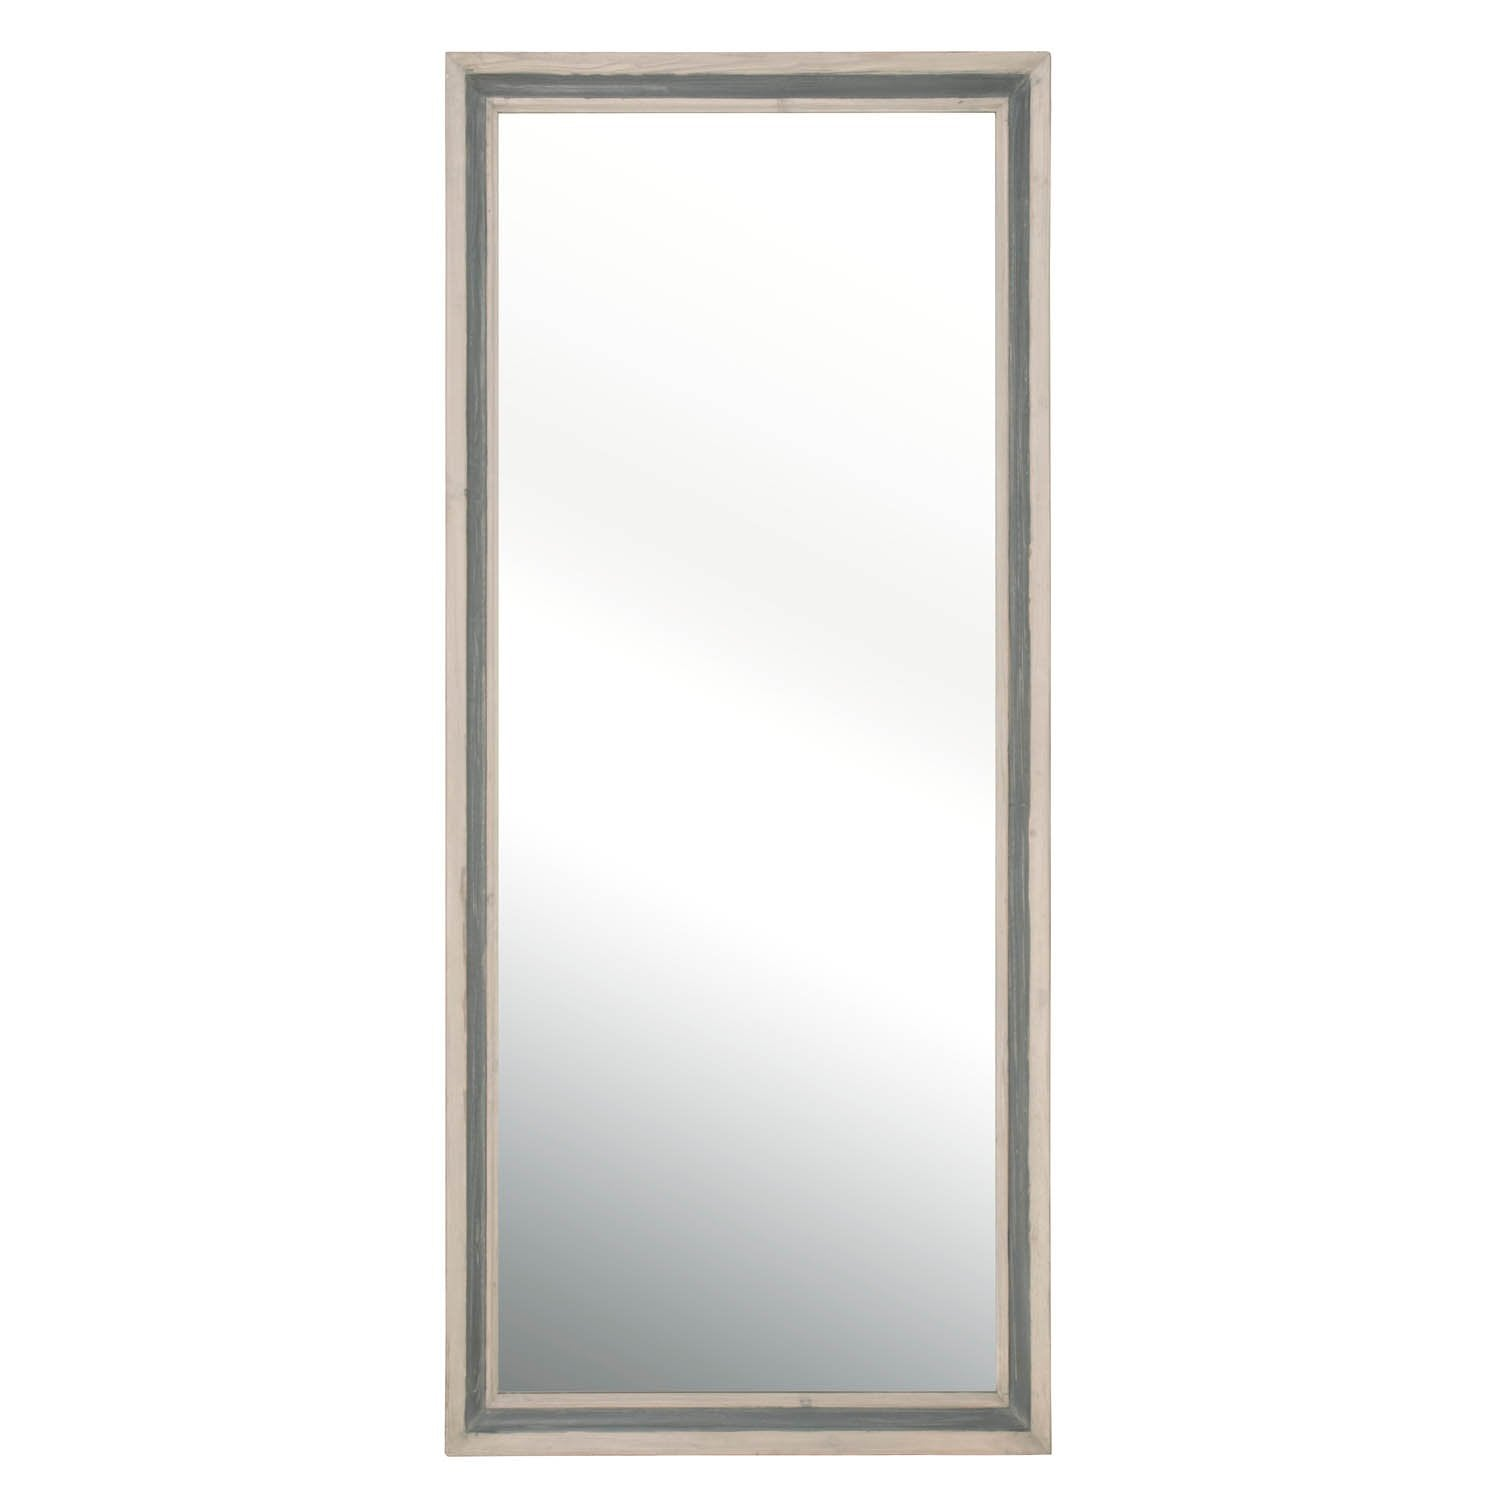 Caden Mirror in Cream Elm